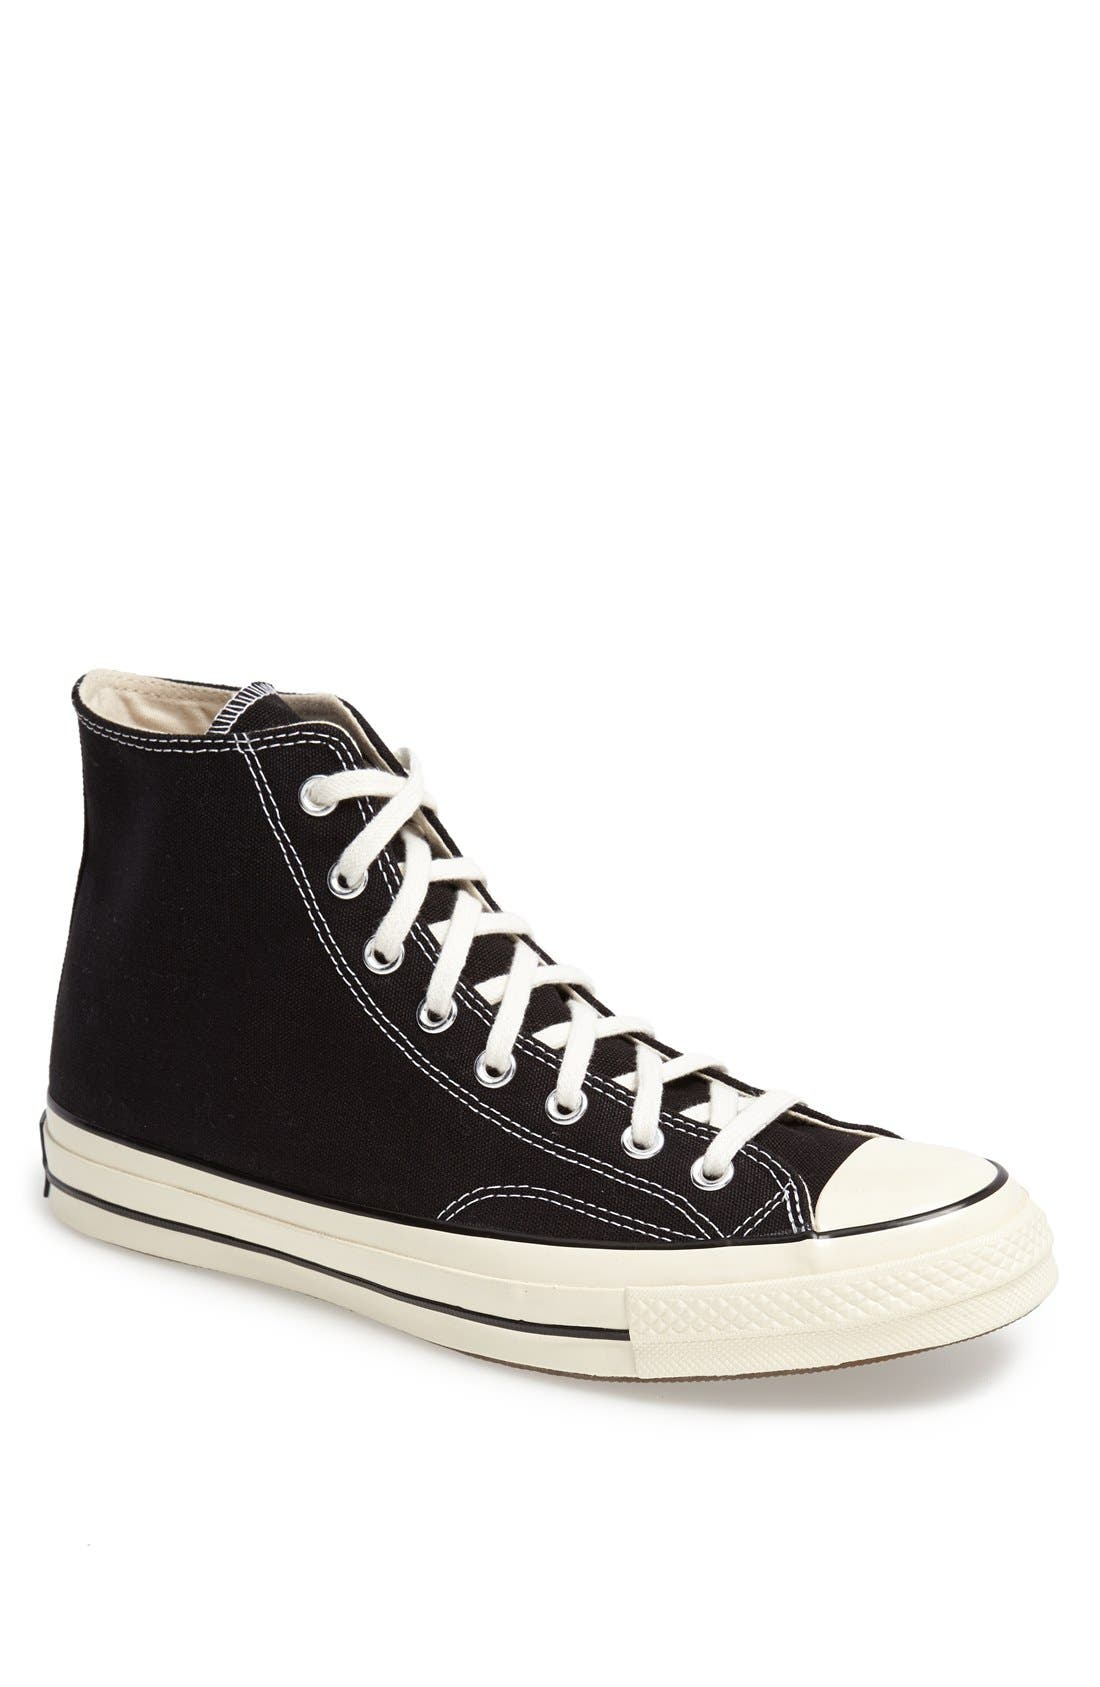 Alternate Image 1 Selected - Converse Chuck Taylor® All Star® '70 High Sneaker (Men)